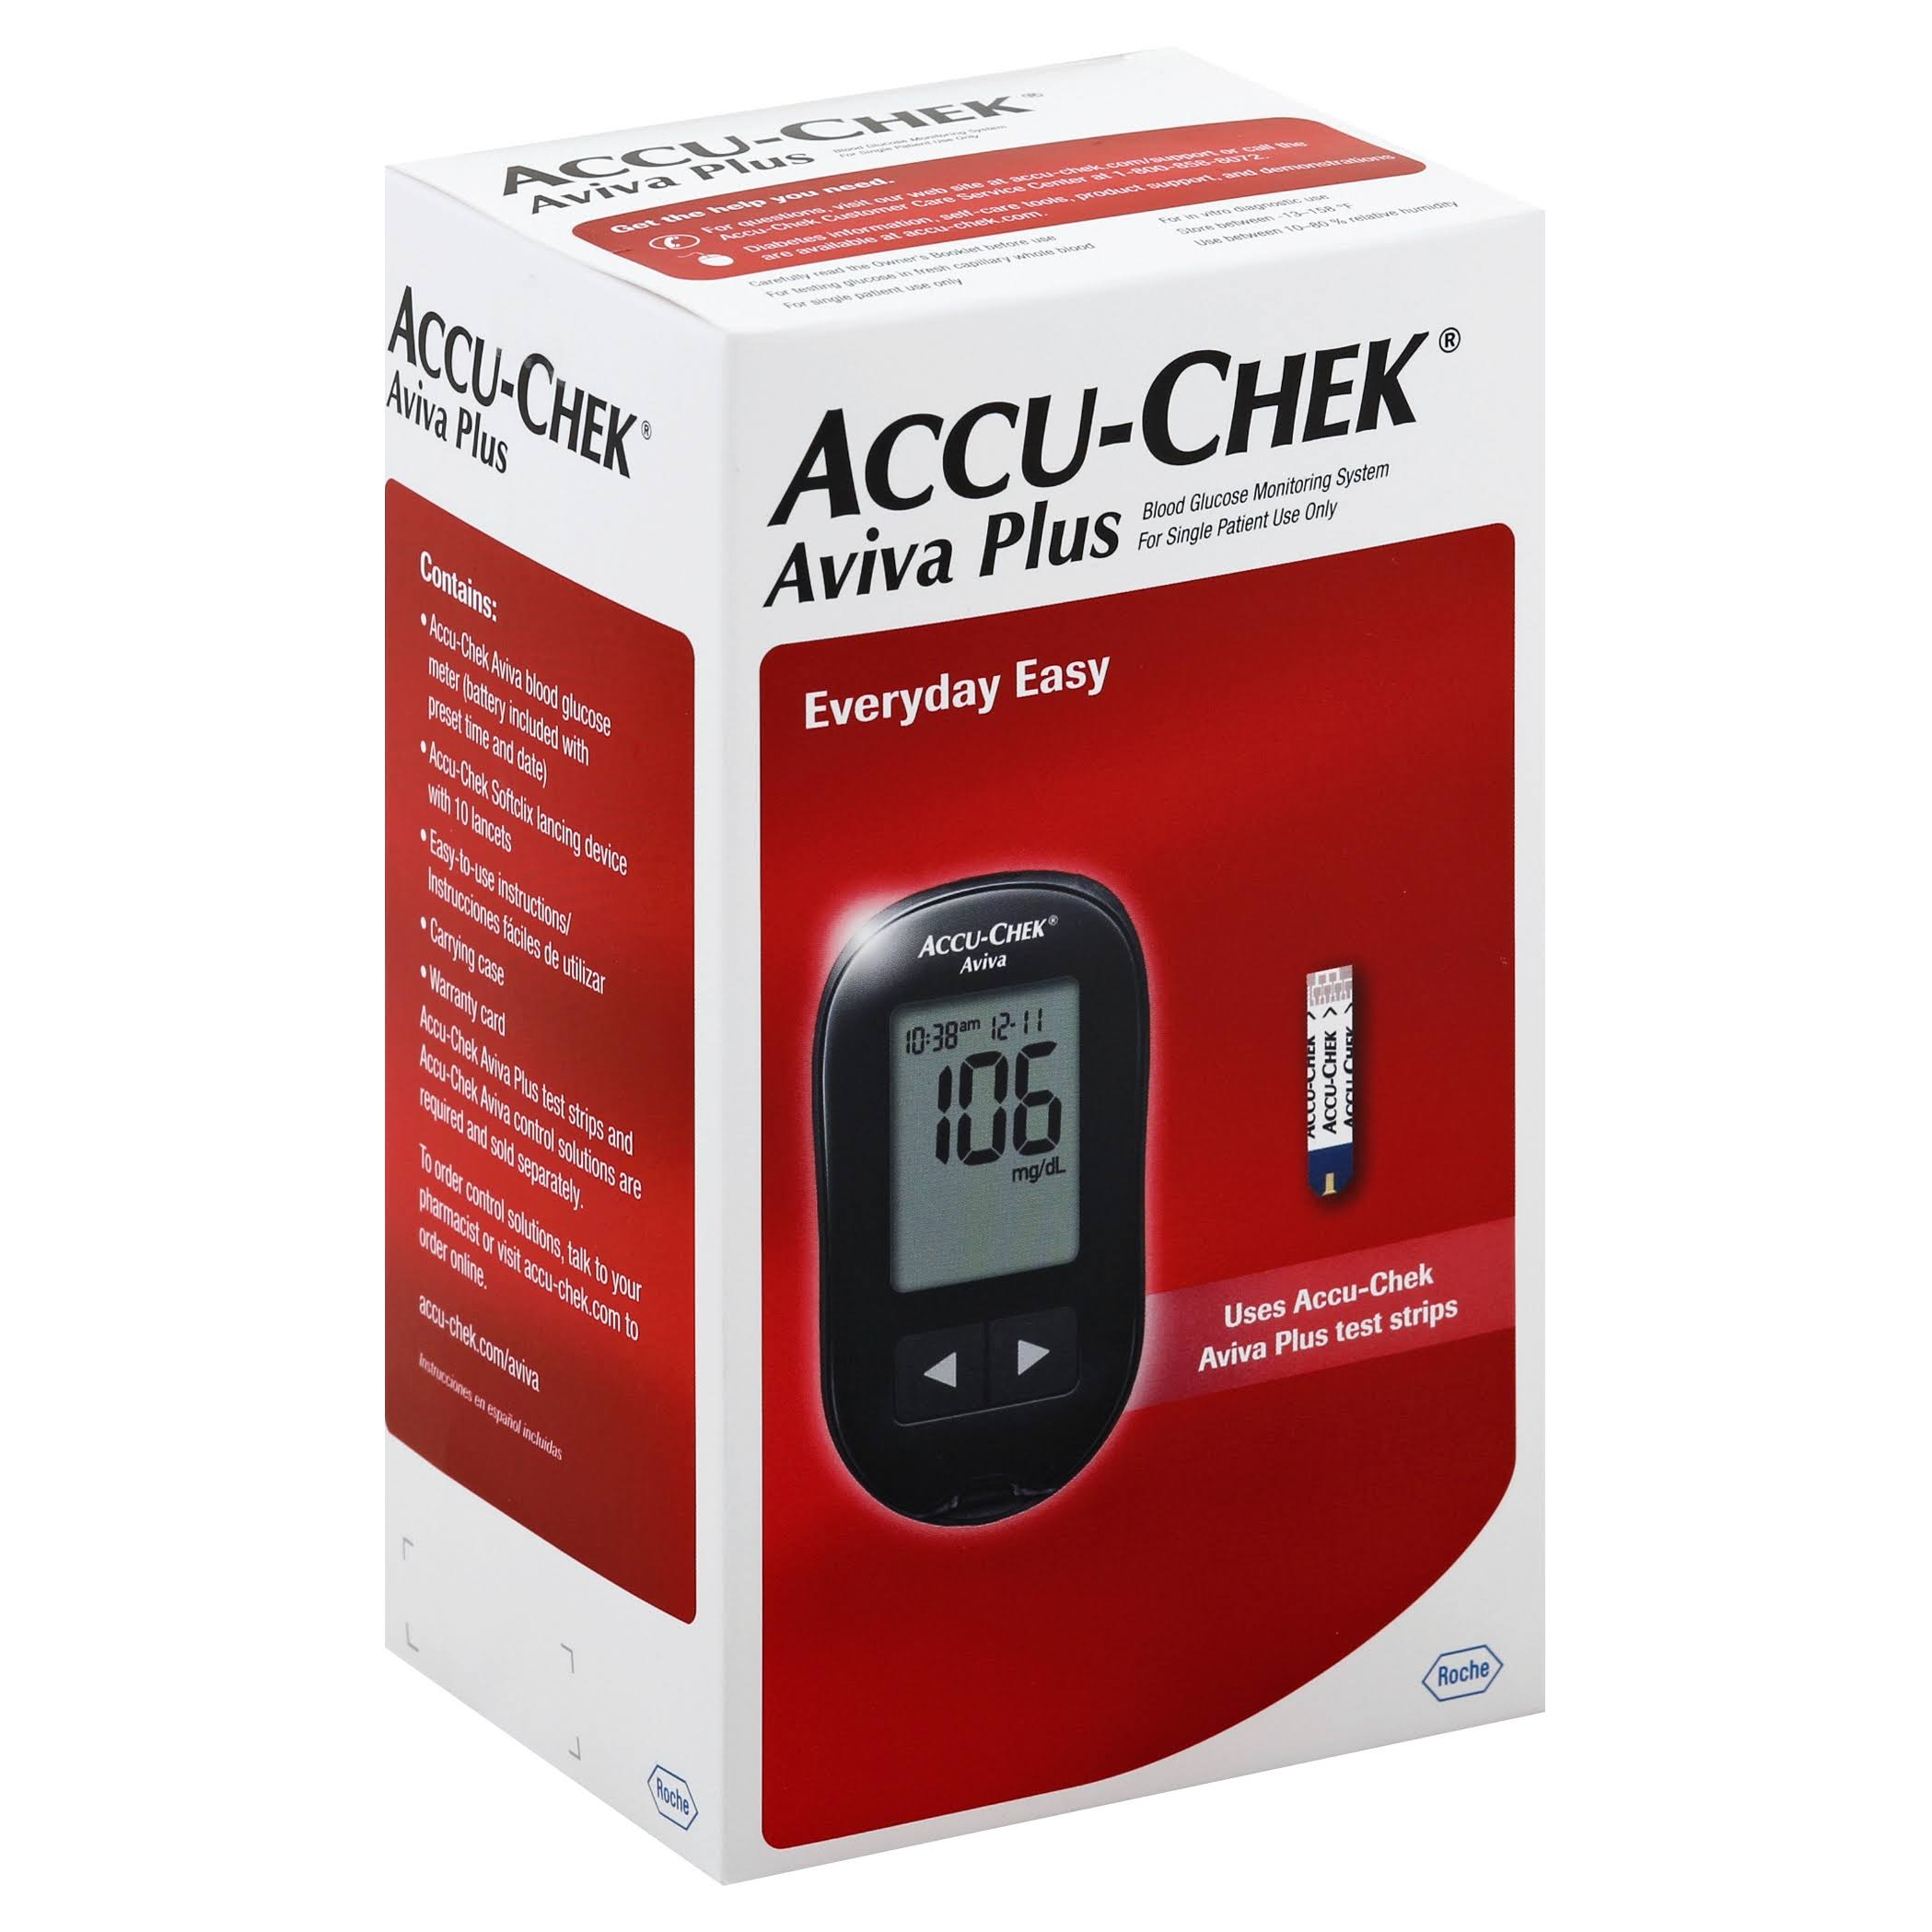 Accu Chek Care Kit, Aviva Plus